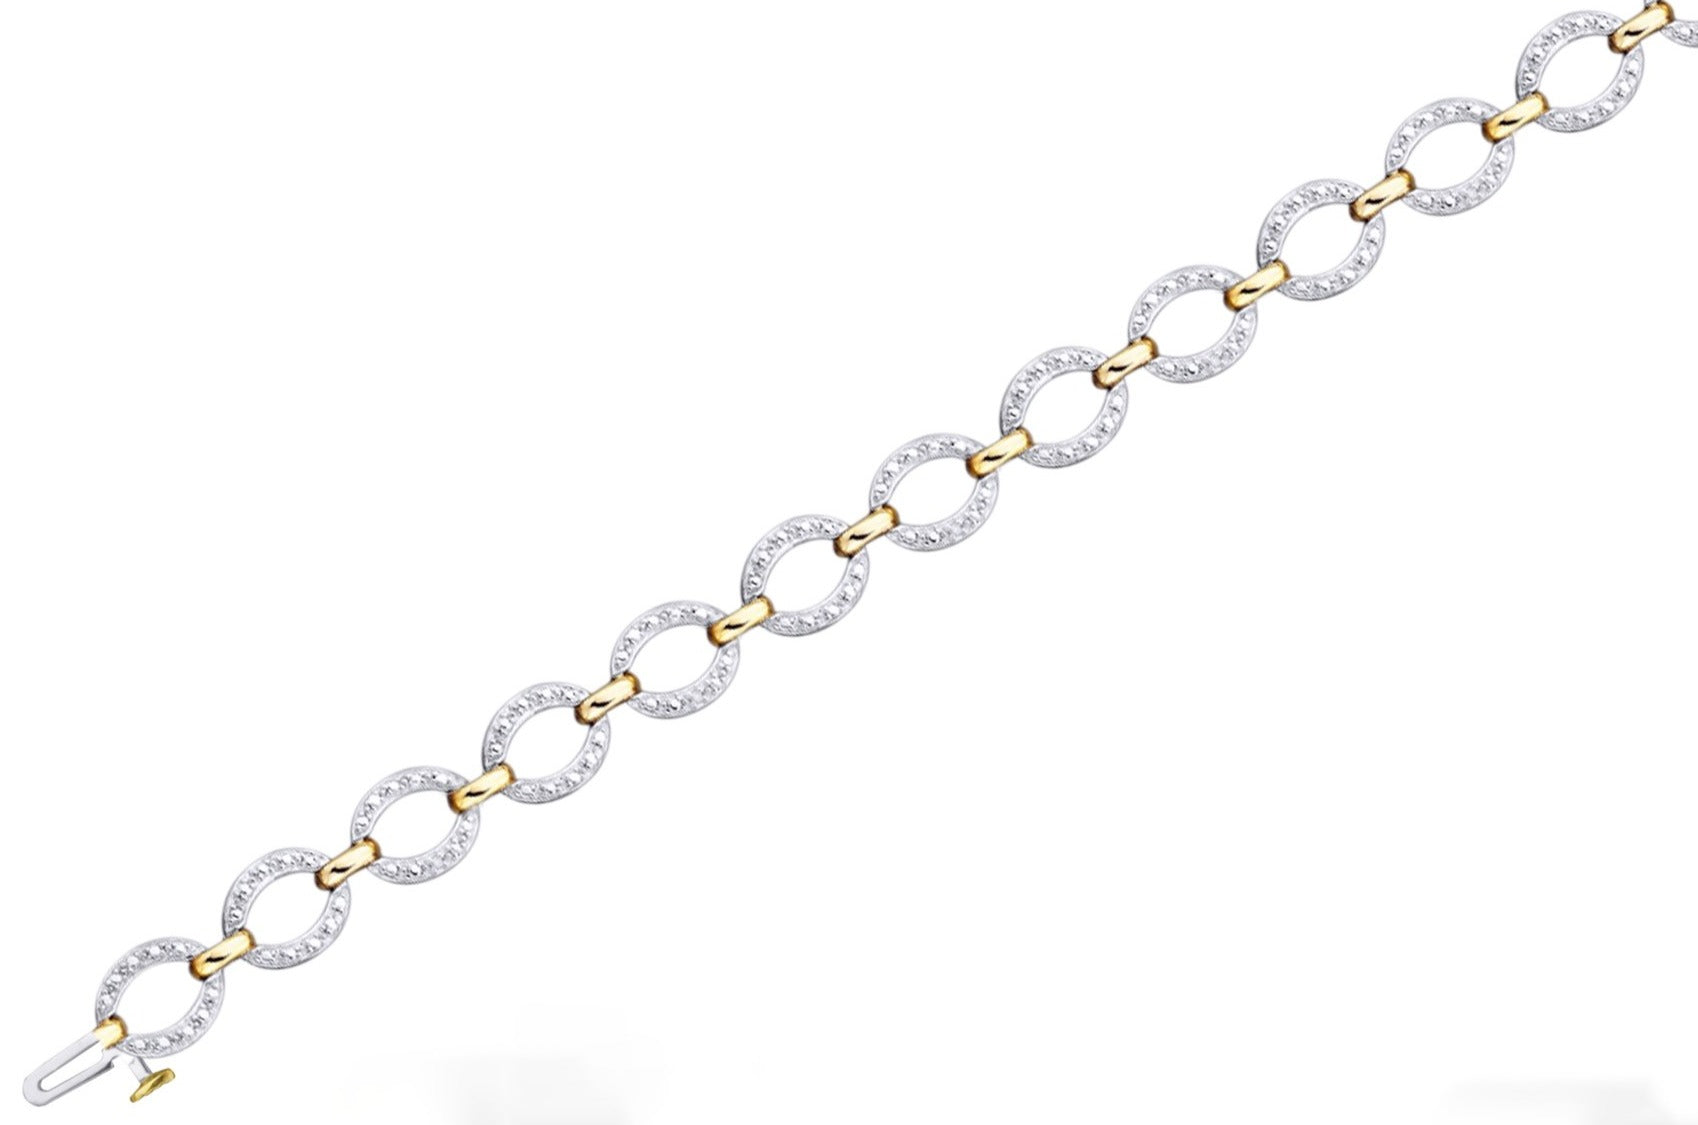 Oval Link Diamond Bracelet